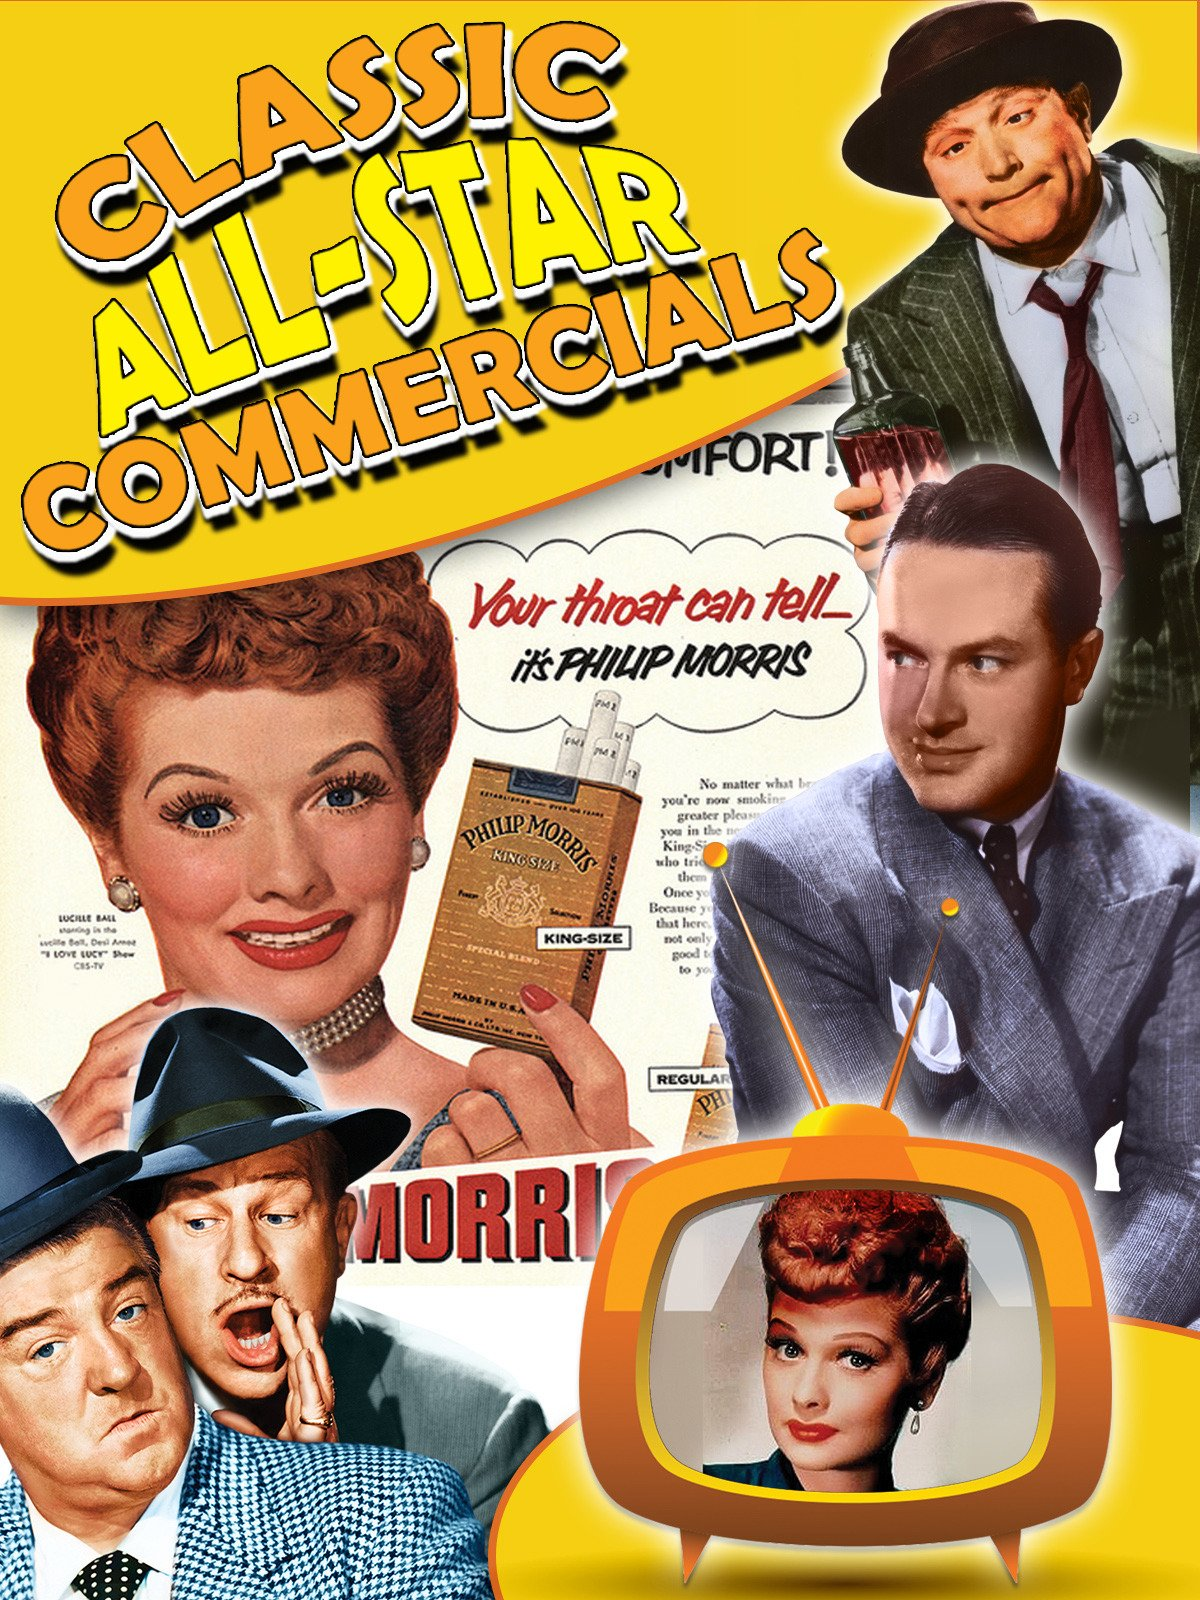 Amazon.com: Classic All-Star Commercials: Lucille Ball, Desi Arnaz ...